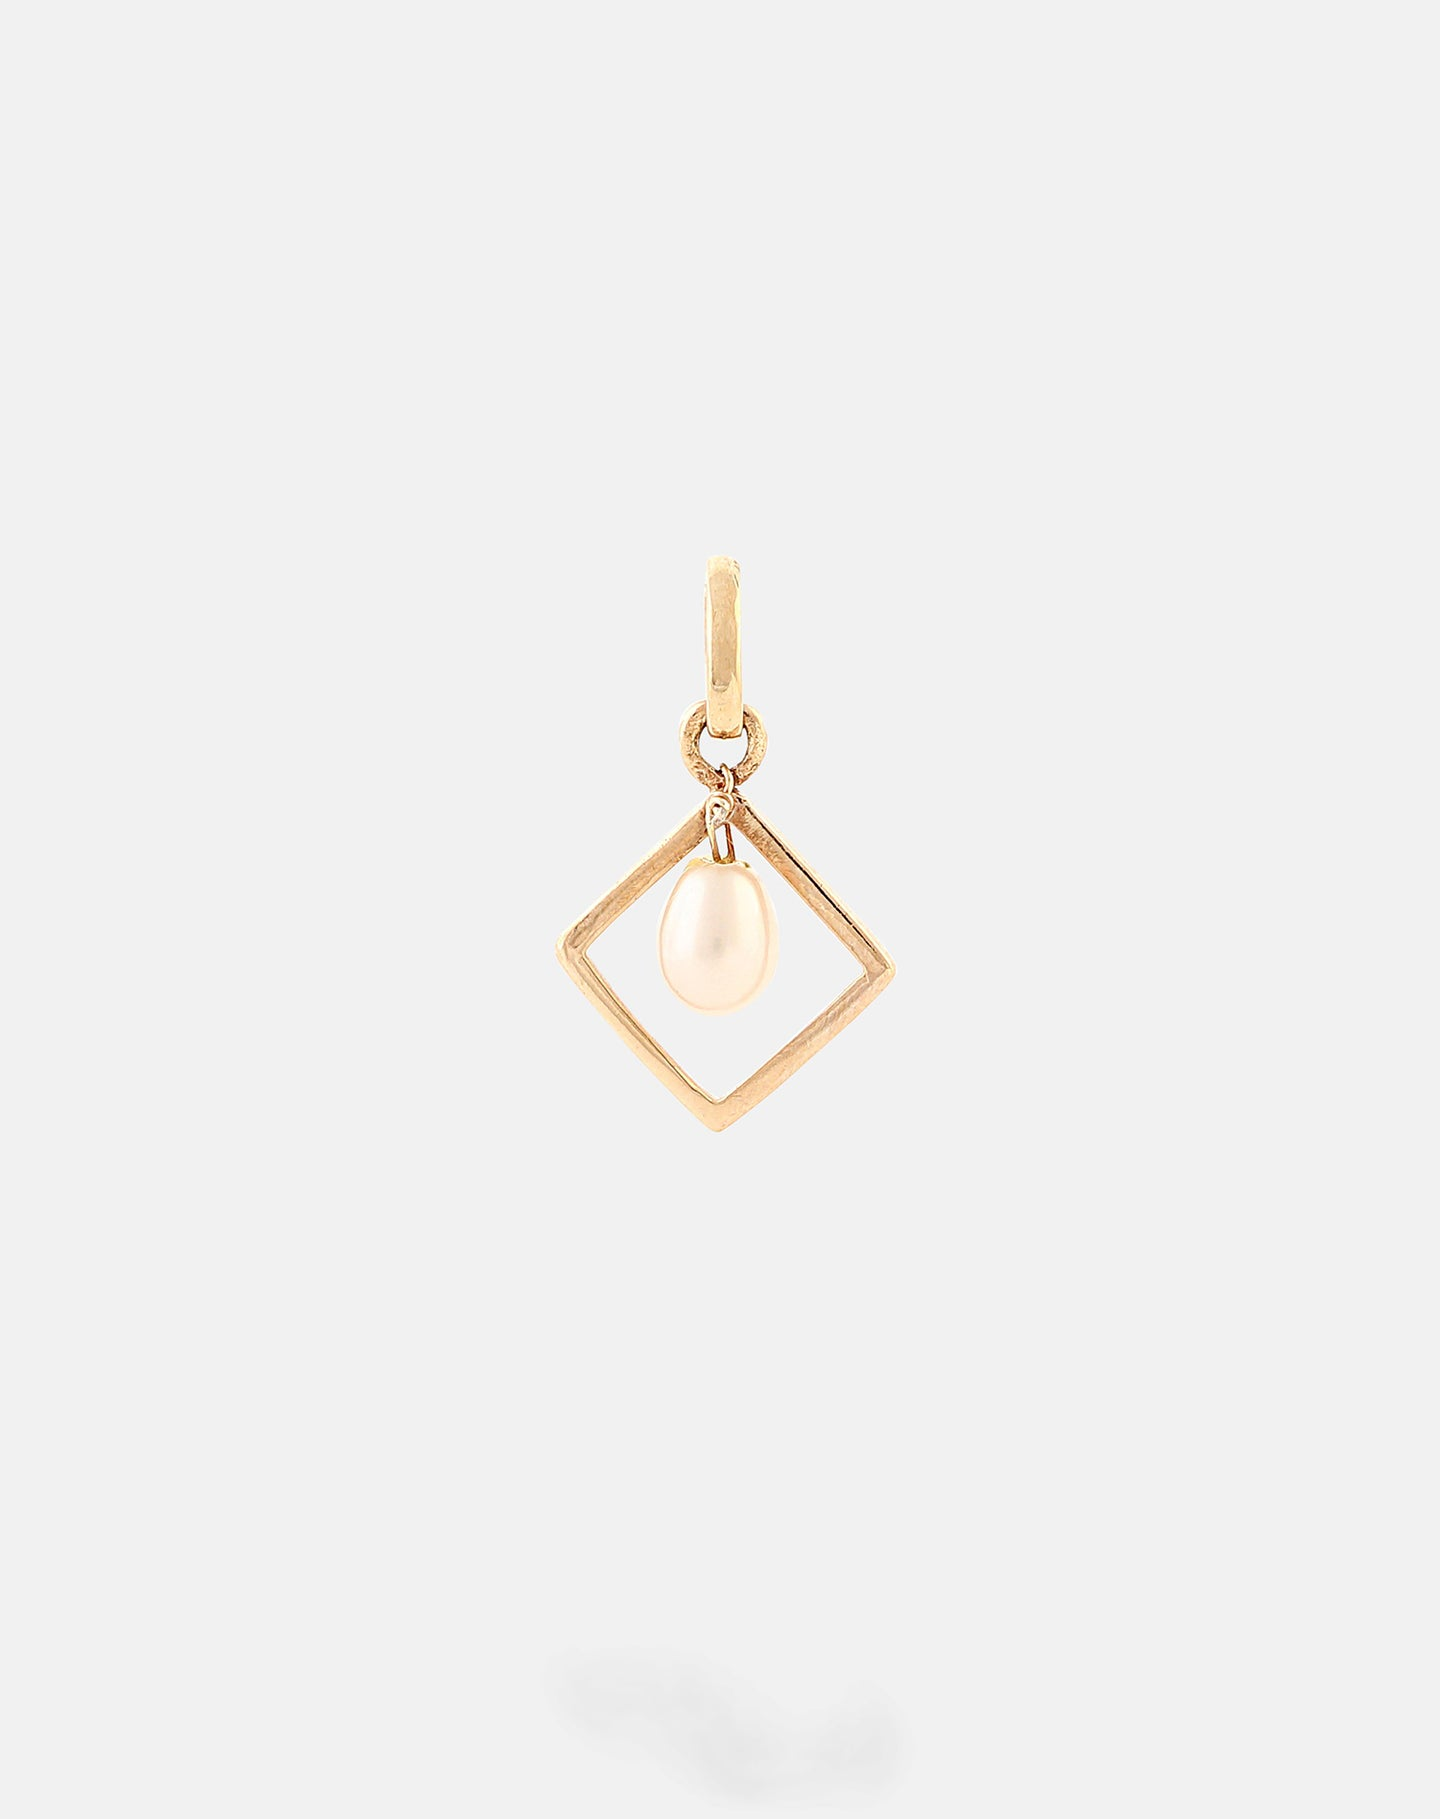 Gold Colored Stone Motivation Charm - Pearl